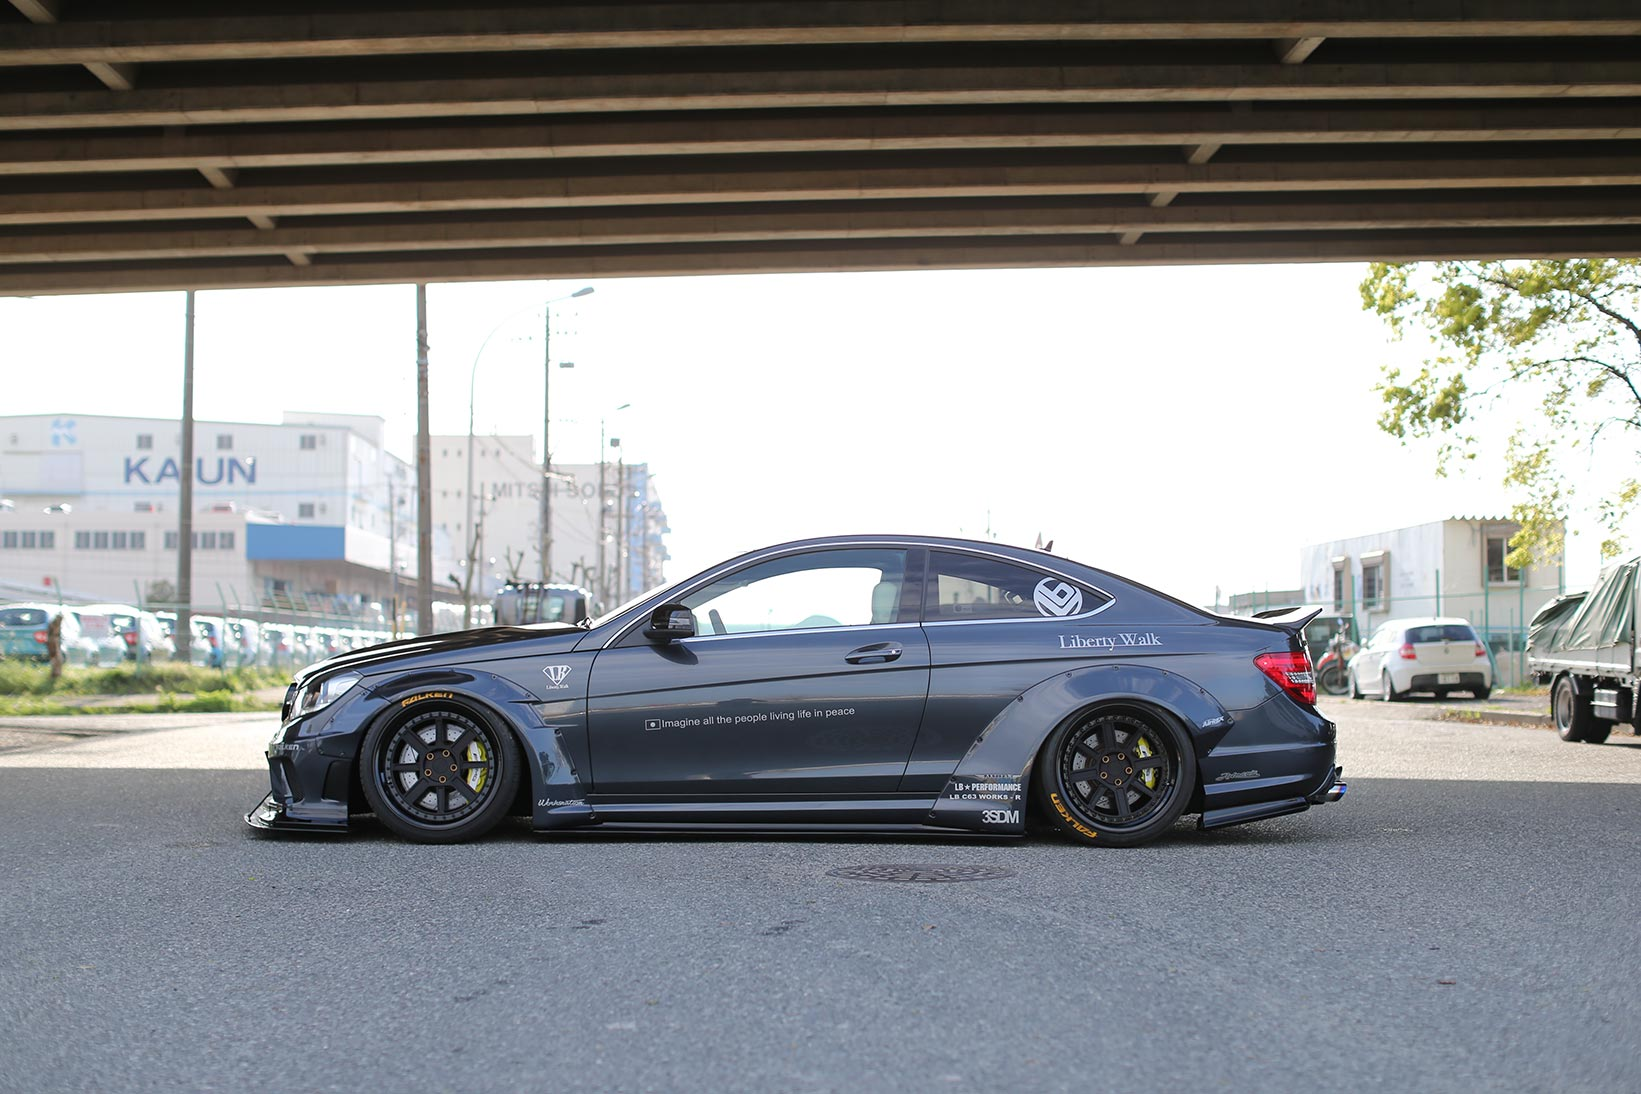 IMG_2240 LB-WORKS MERCEDES-BENZ C63 coupe & sedan  W204